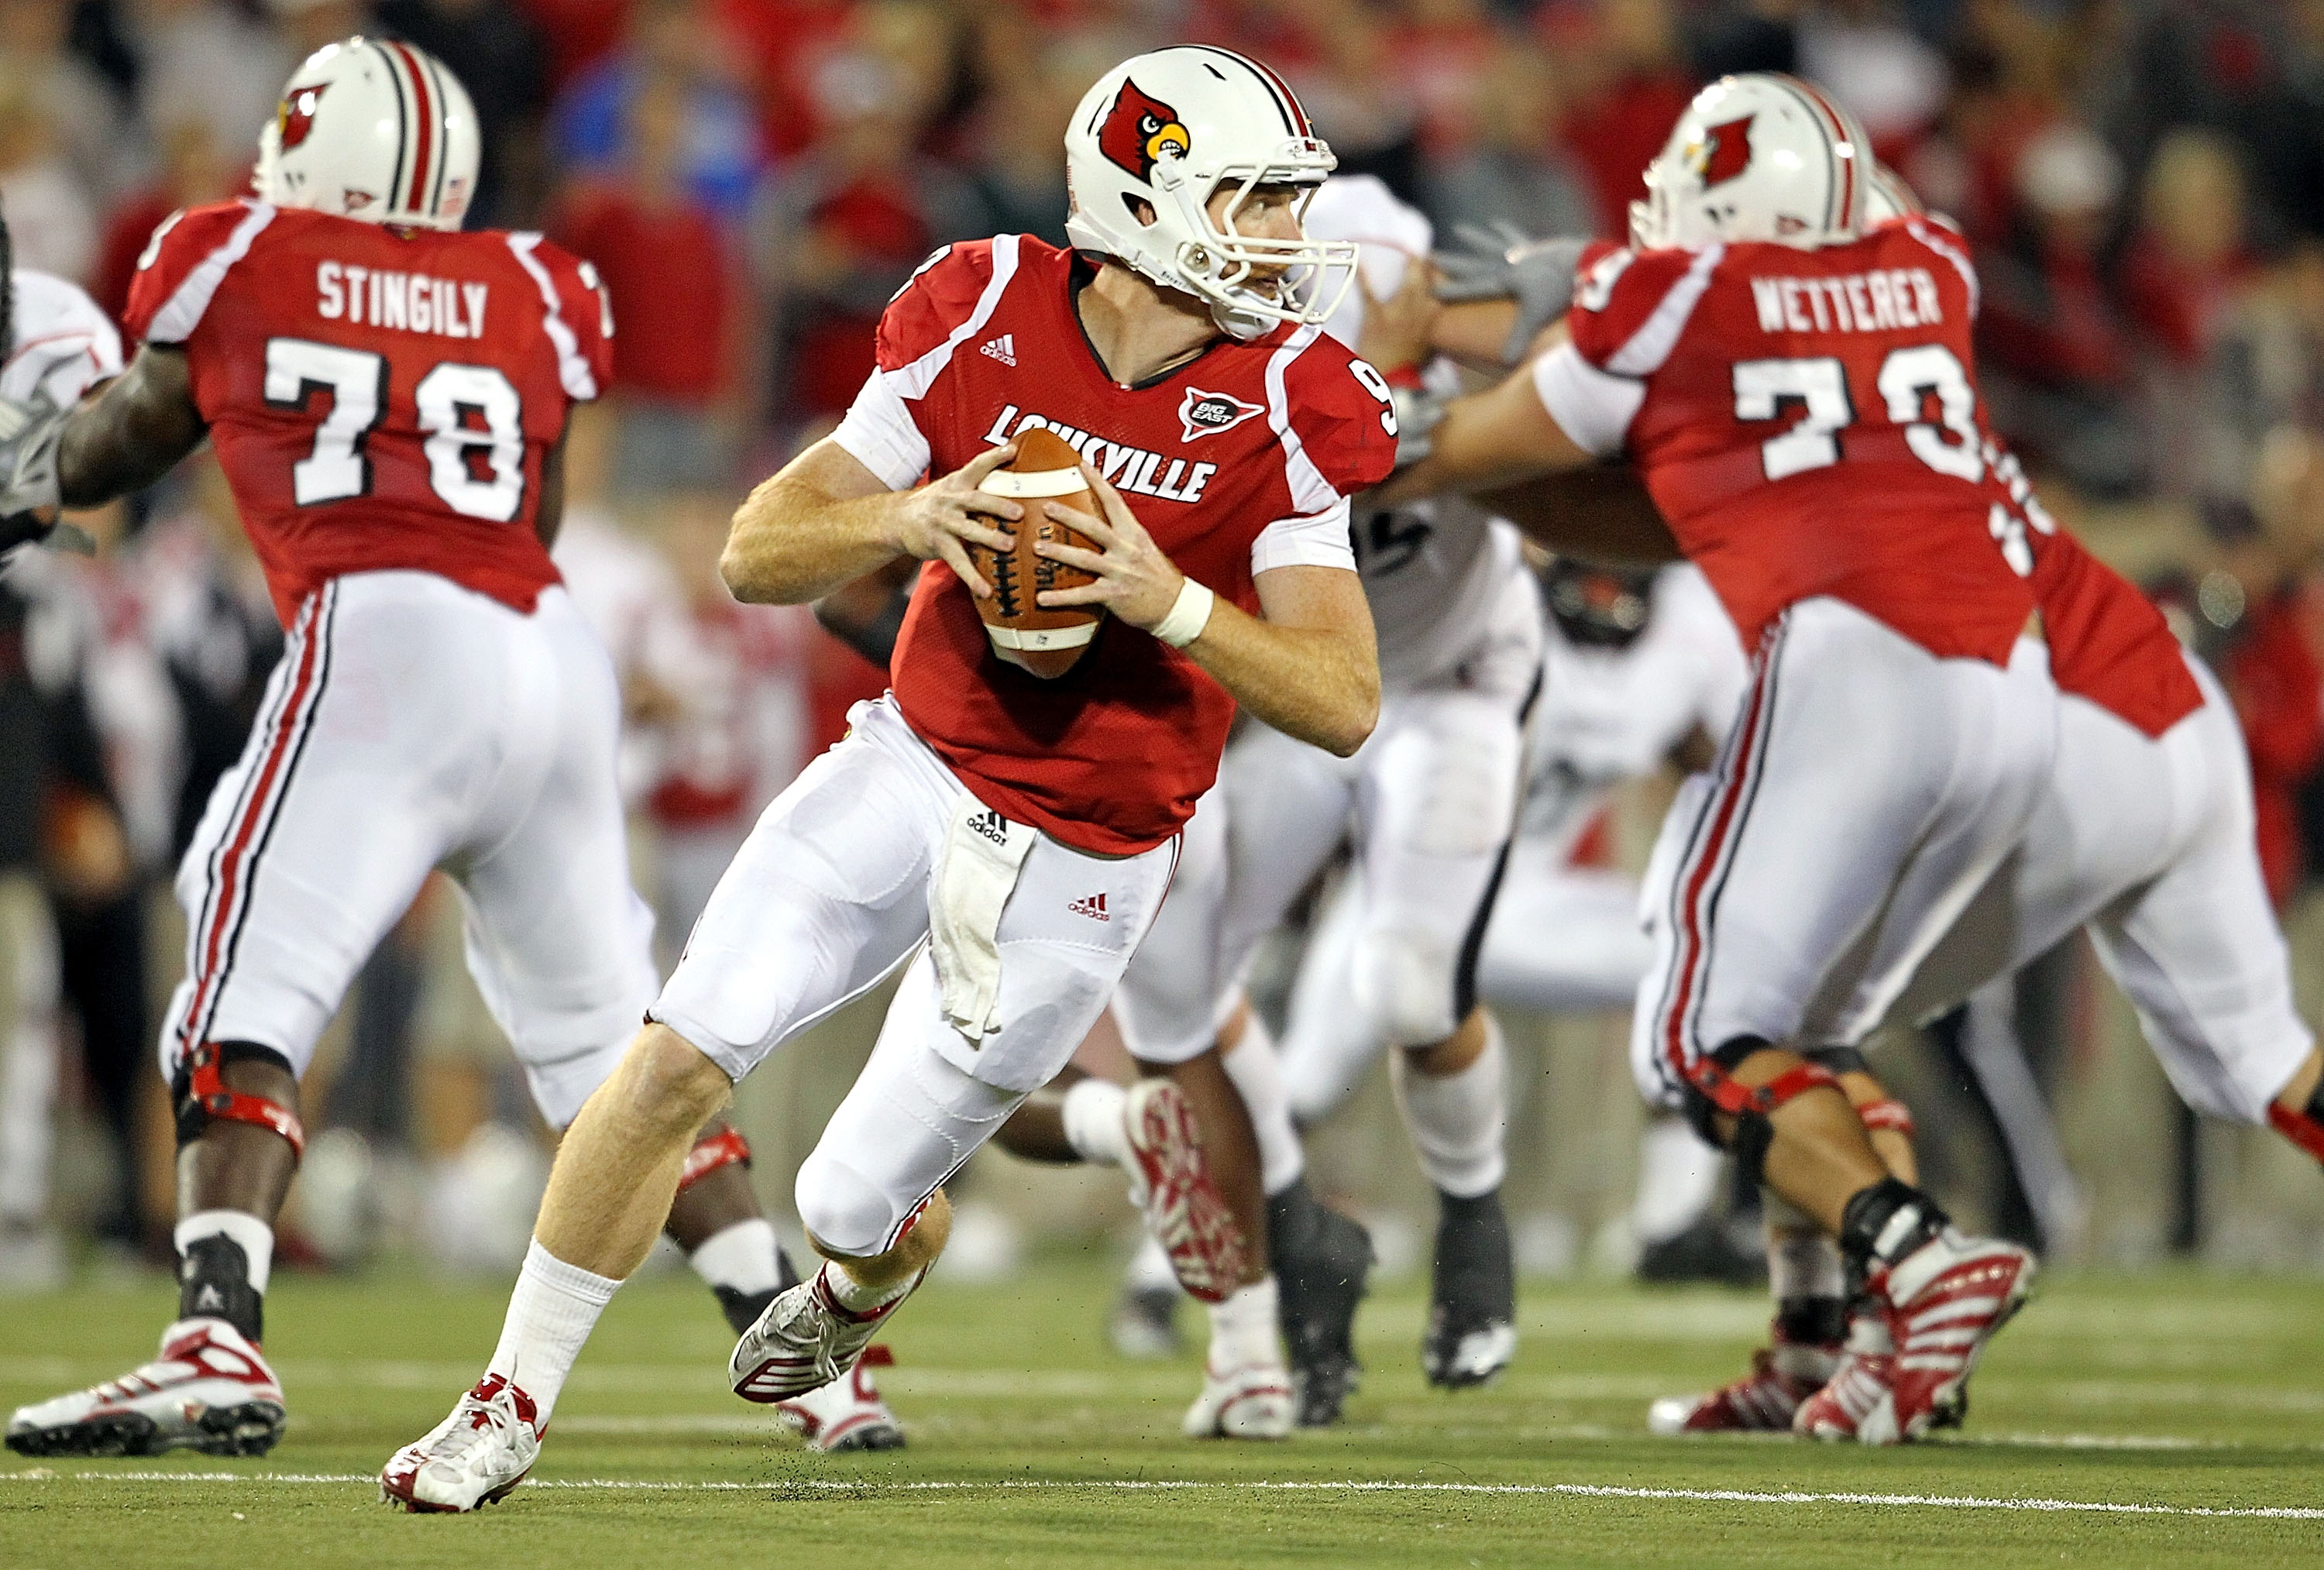 Seattle will certainly search for a quarterback of the future in the un-drafted free agent pool.